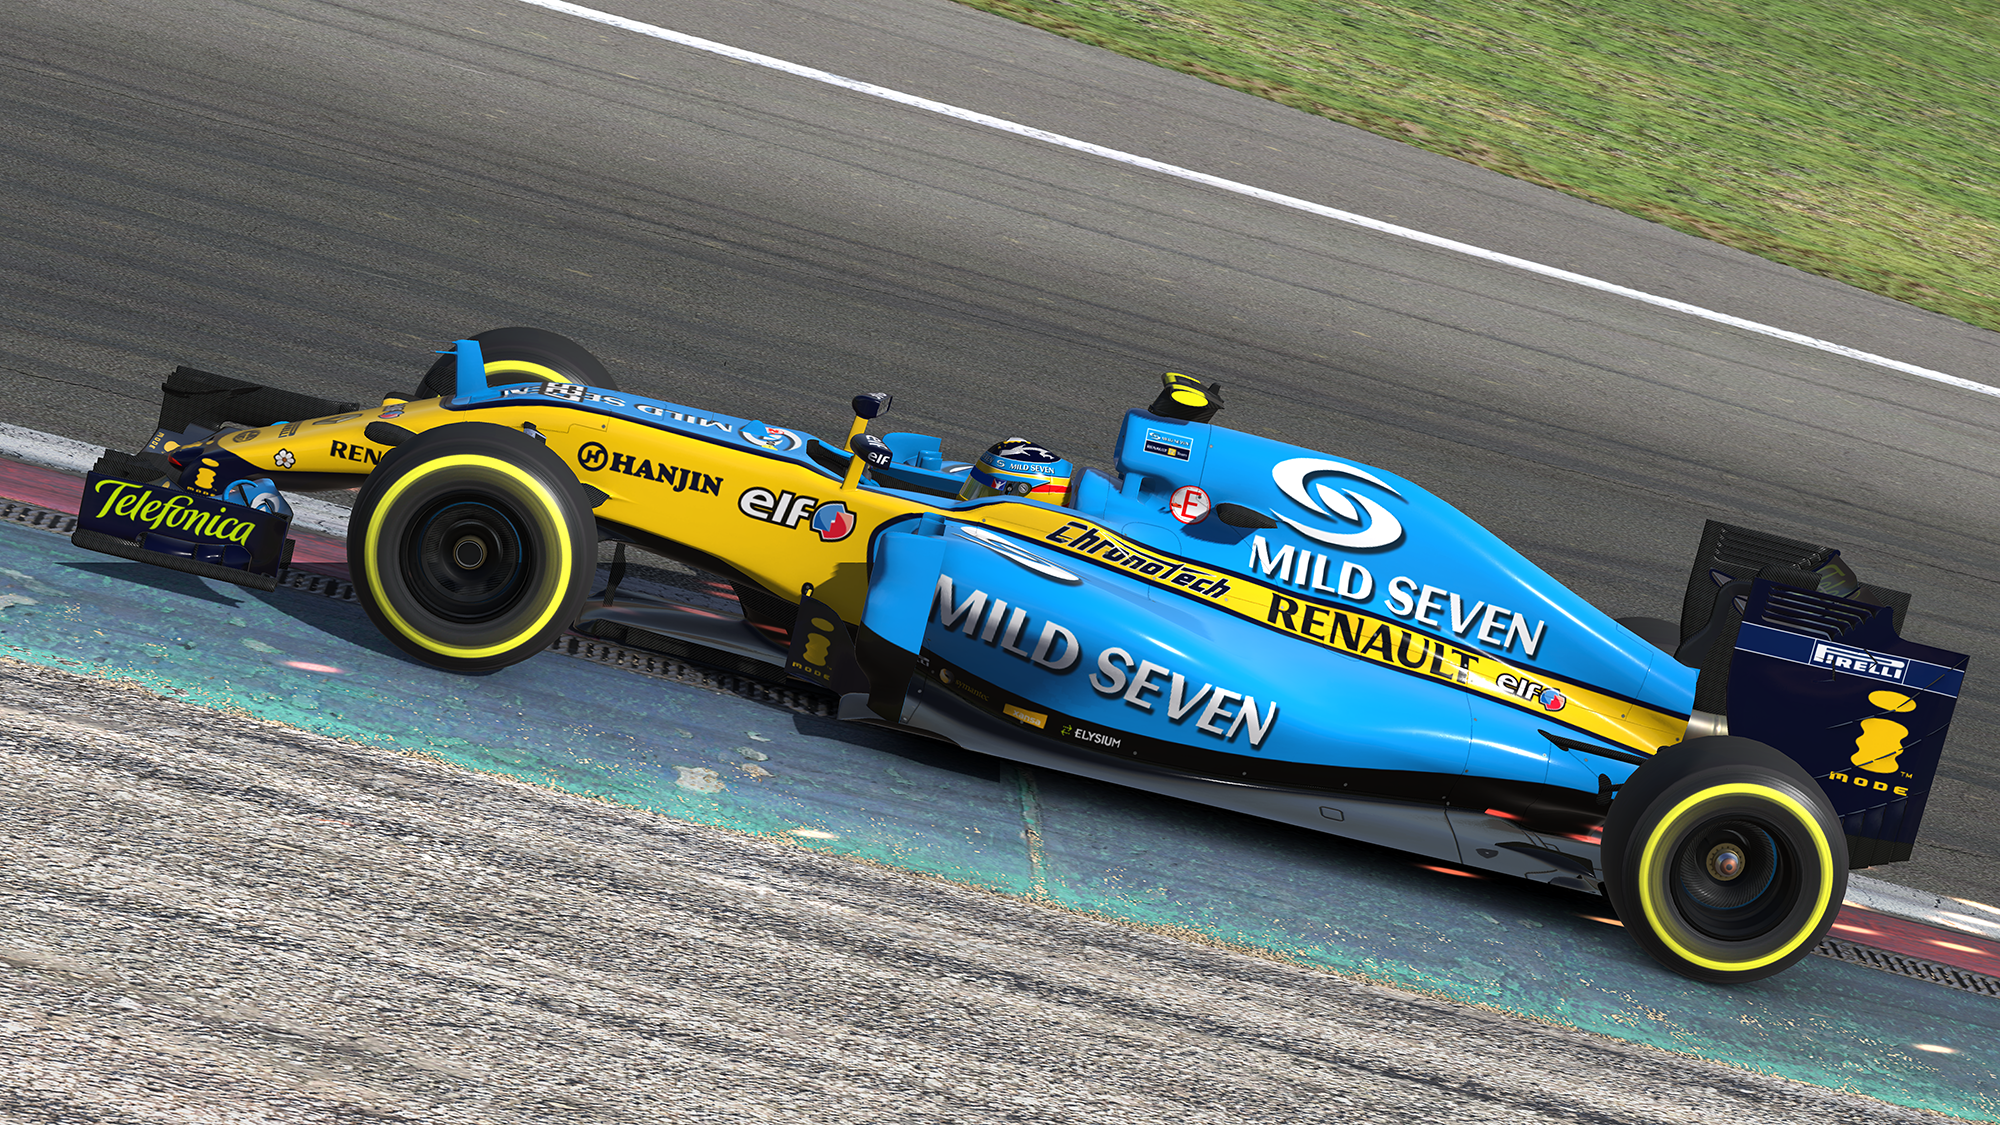 Preview of 2006 F1 Renault R26 by Mike Owen